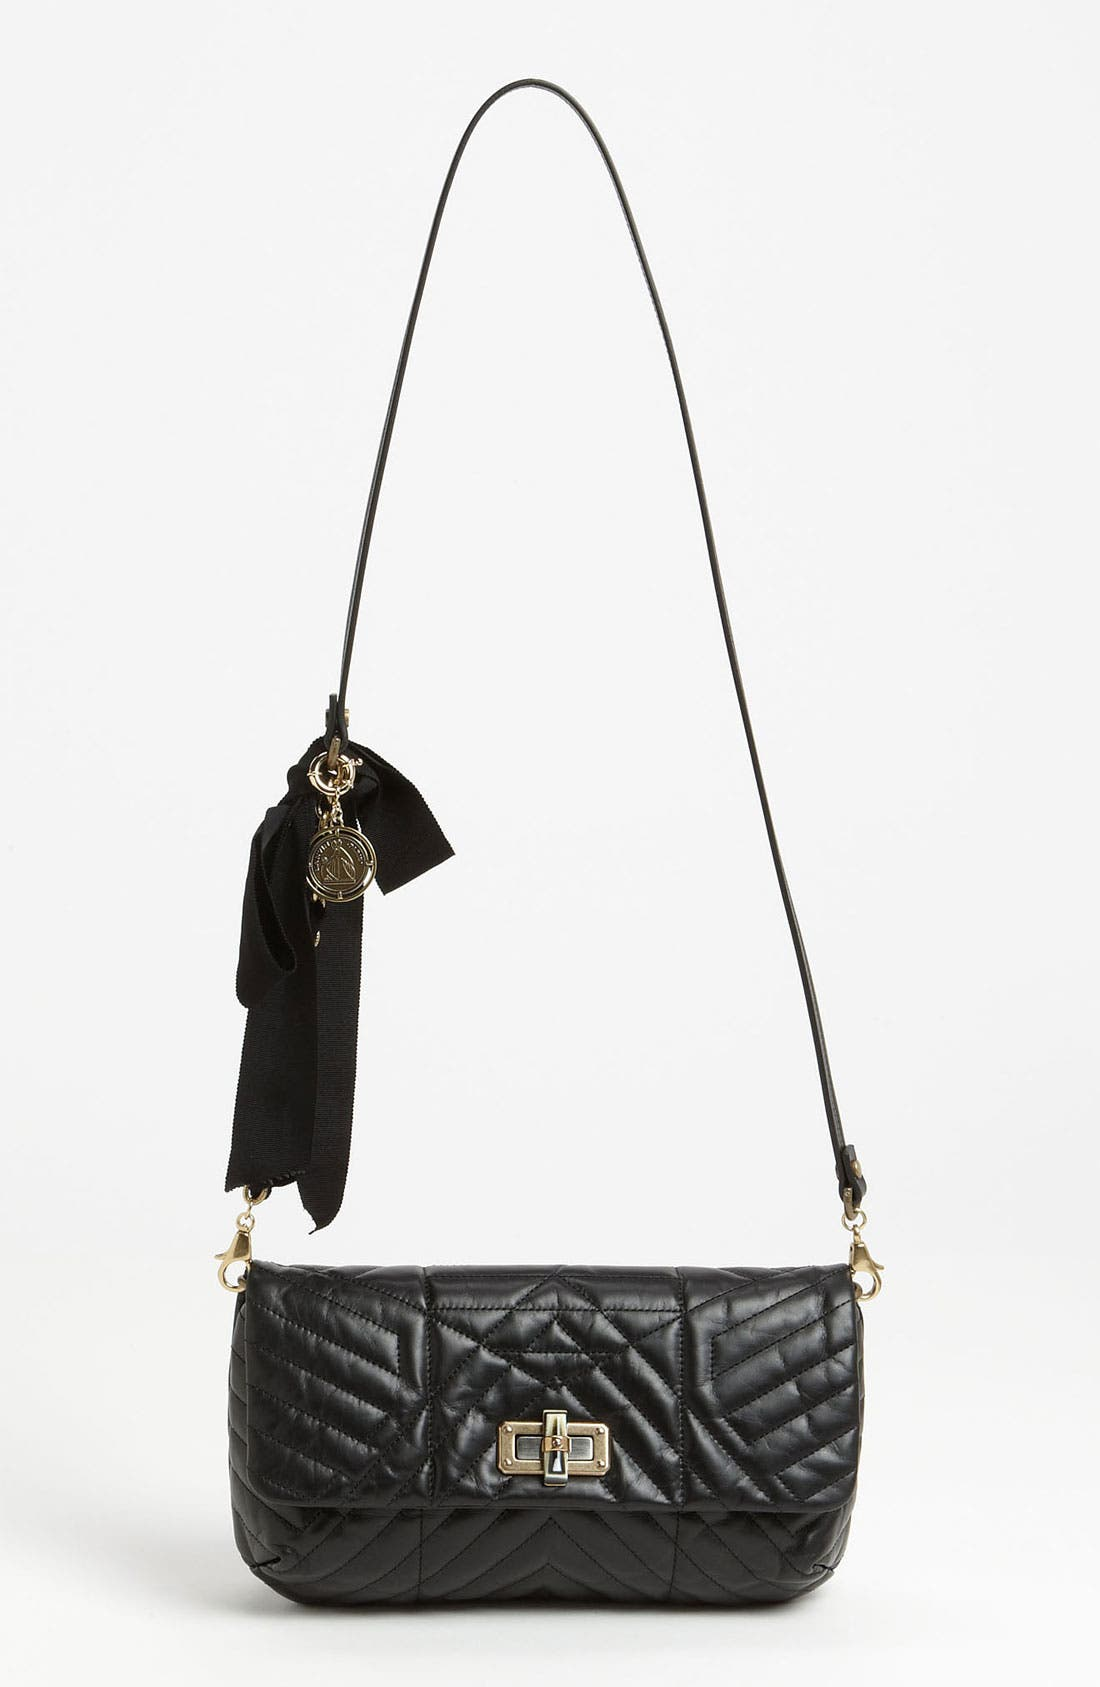 Alternate Image 1 Selected - Lanvin 'Happy' Quilted Leather Crossbody Bag